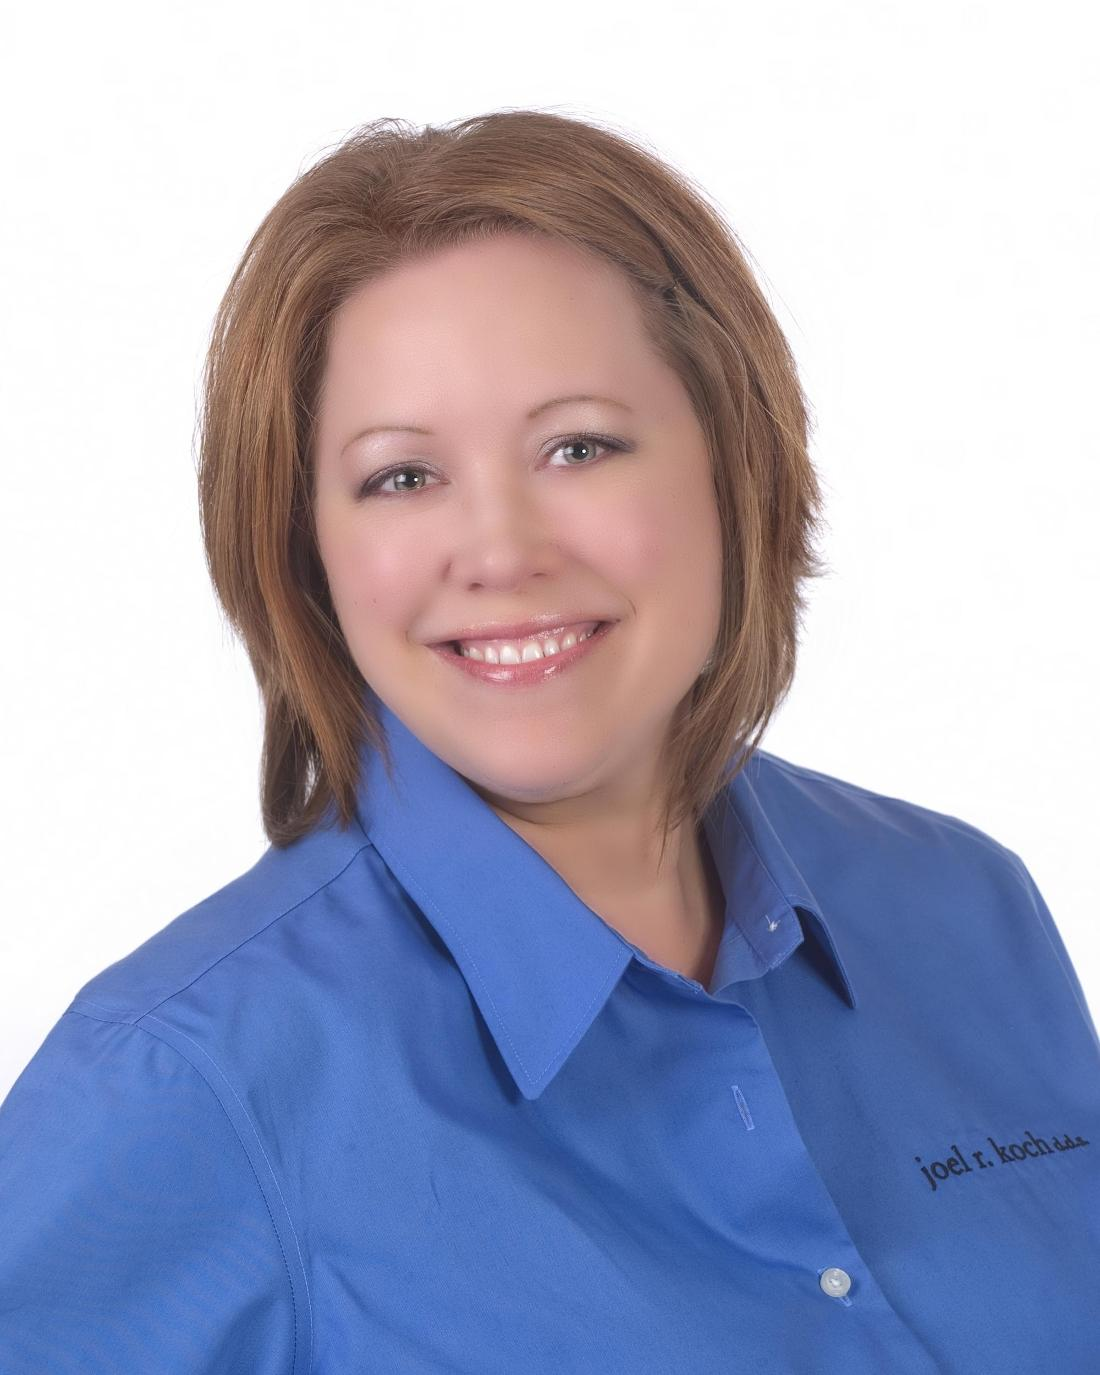 Melissa Headshot | Friendly Dental Team in West Chester OH